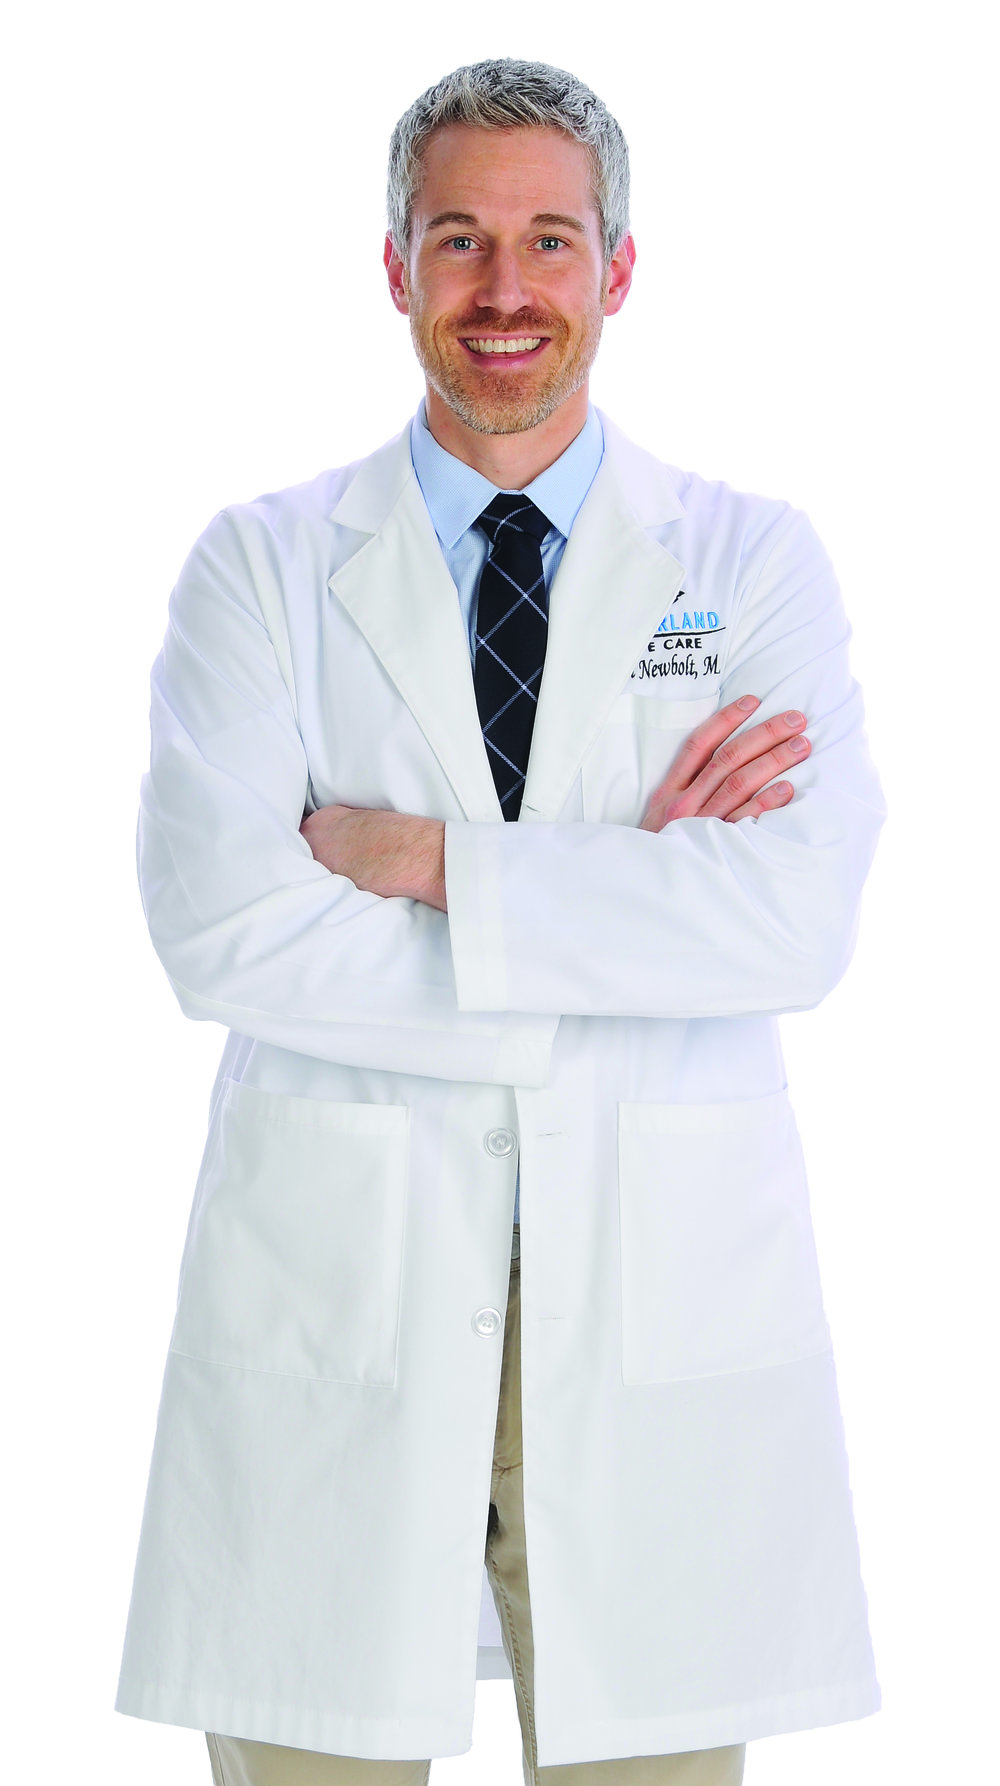 Dr. Evan Newbolt - Physician Page